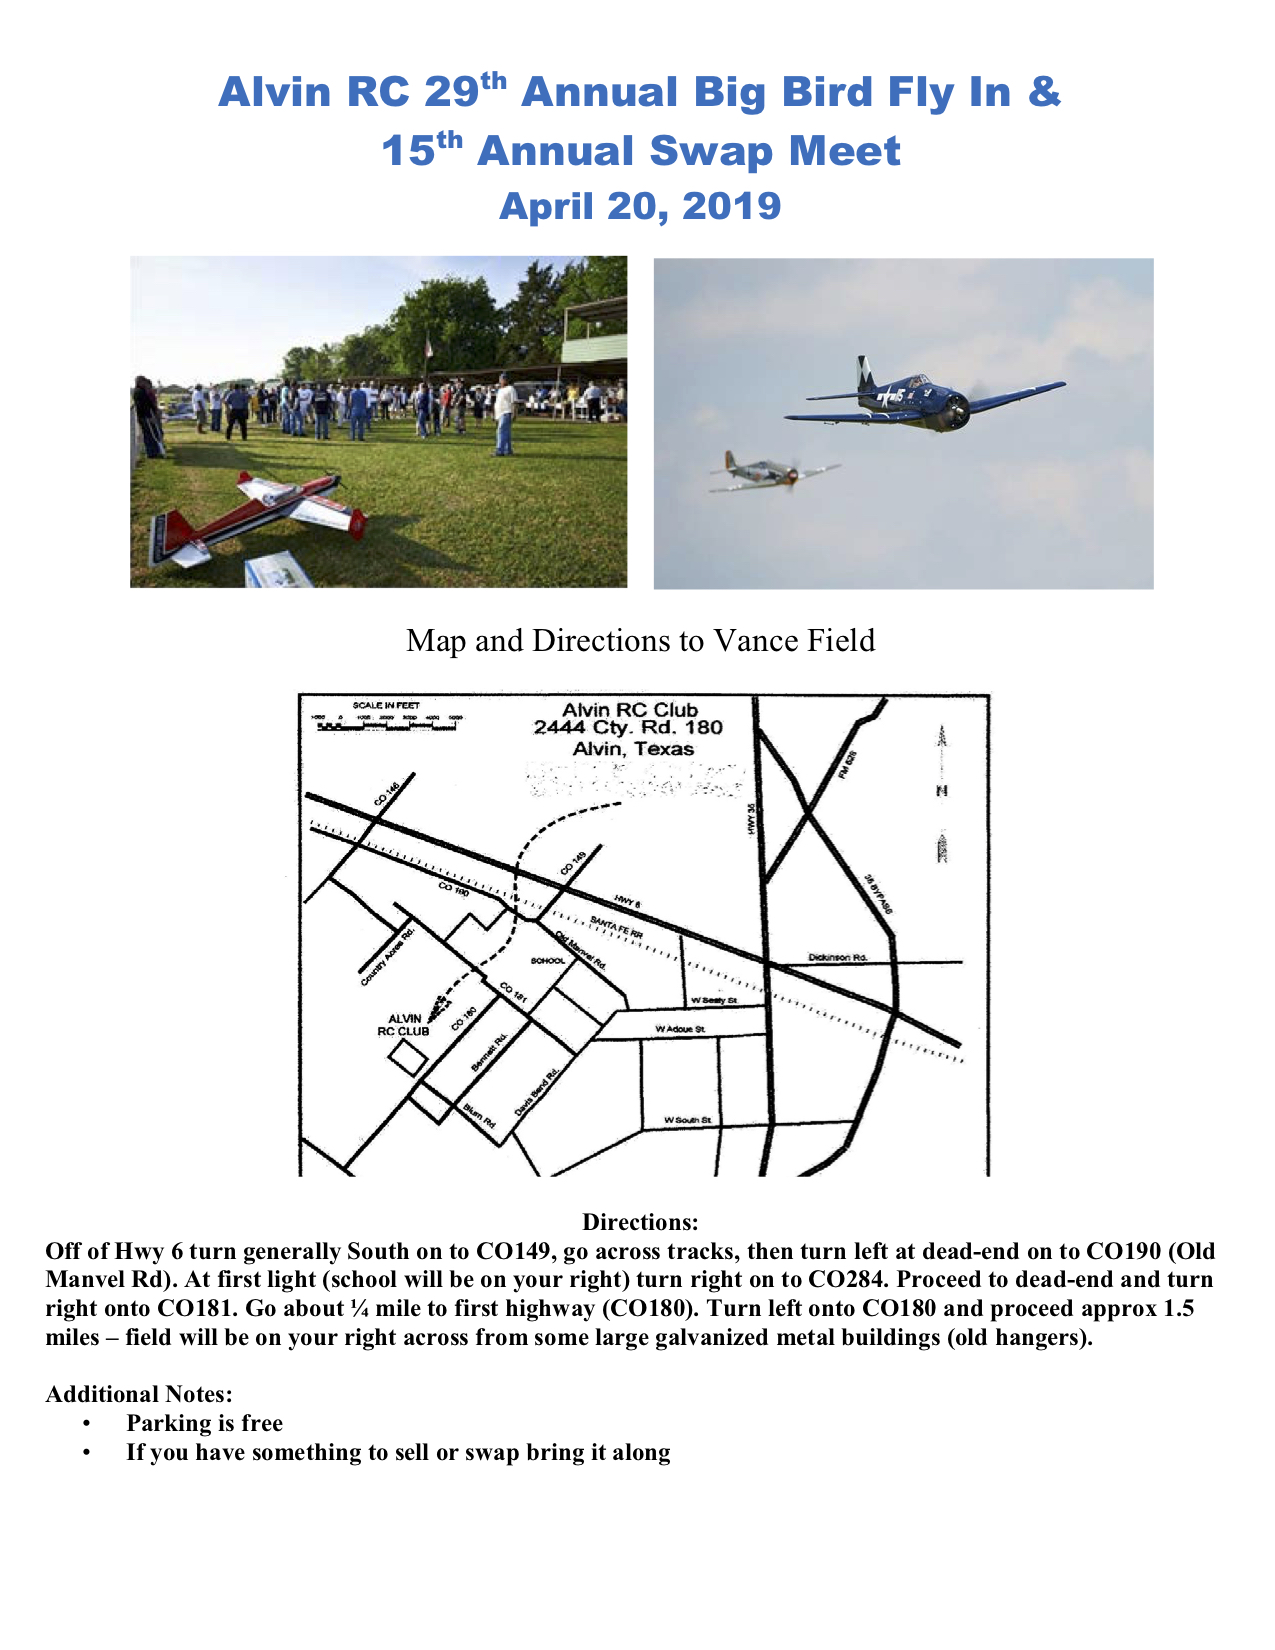 Alvin R/C Model Airplane Association - Flying R/C Airplanes